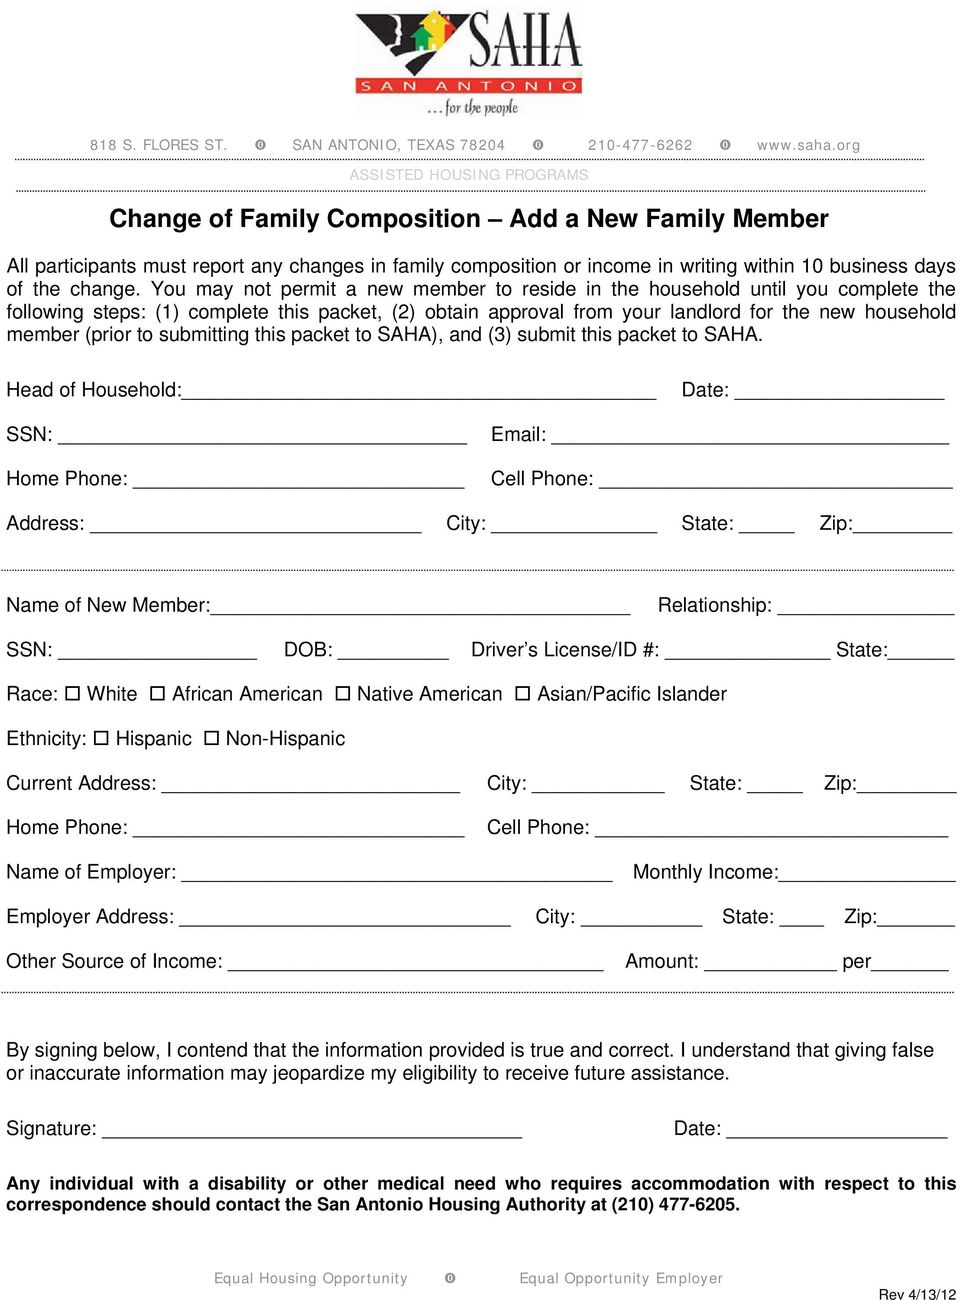 You may not permit a new member to reside in the household until you complete the following steps: (1) complete this packet, (2) obtain approval from your landlord for the new household member (prior